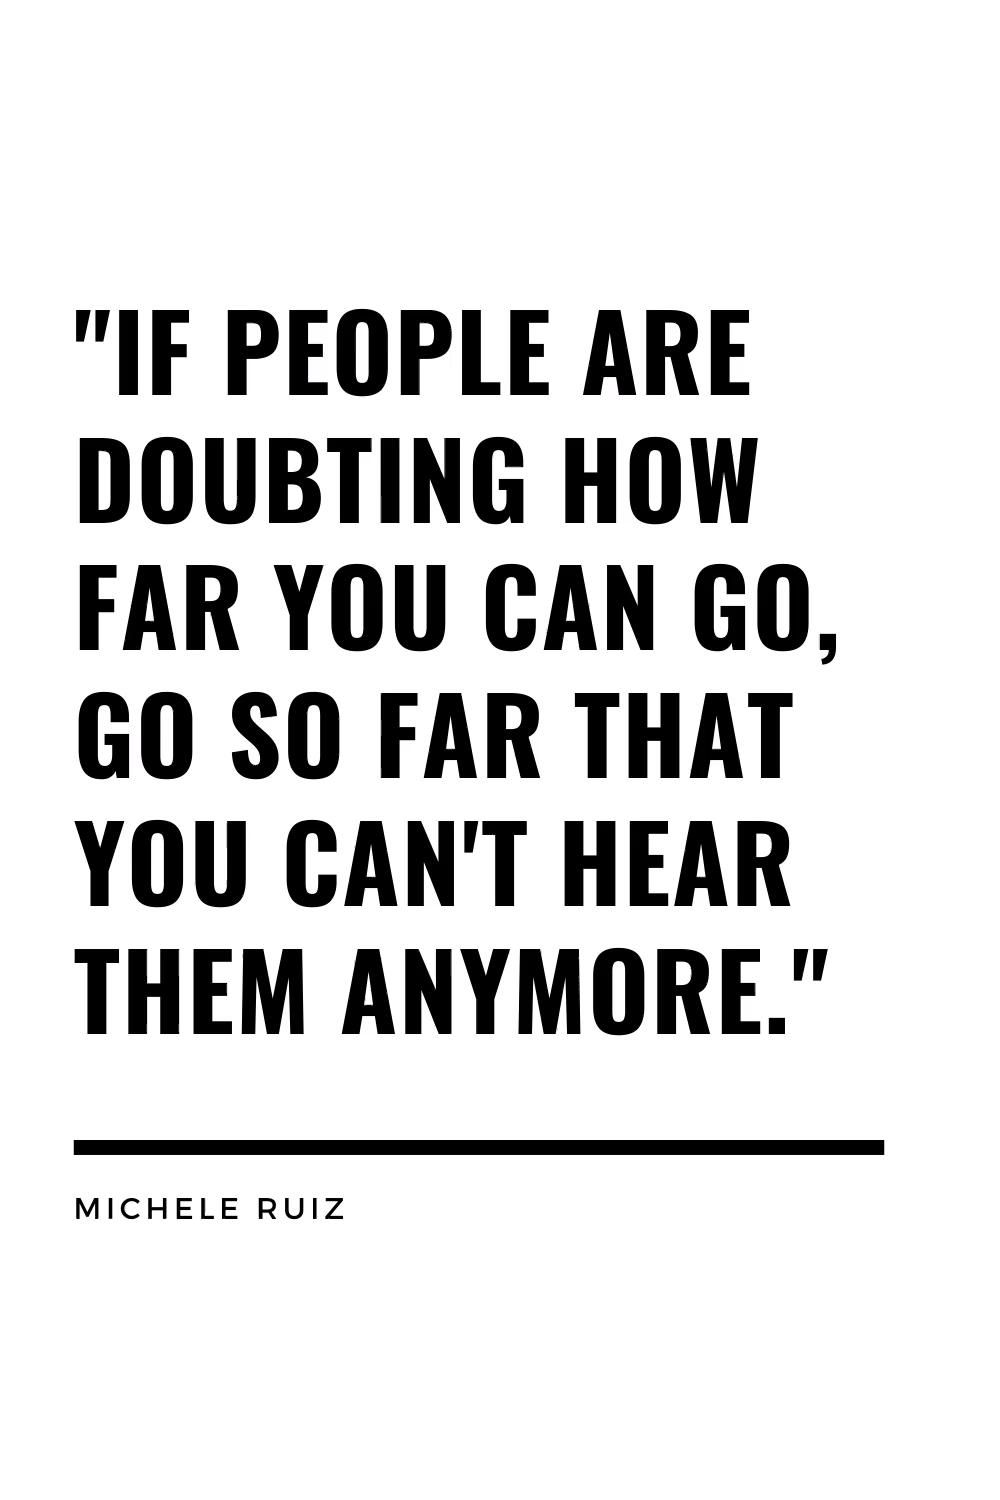 Inspirational Quote about fighting doubt and achieving success from Michele Ruiz.